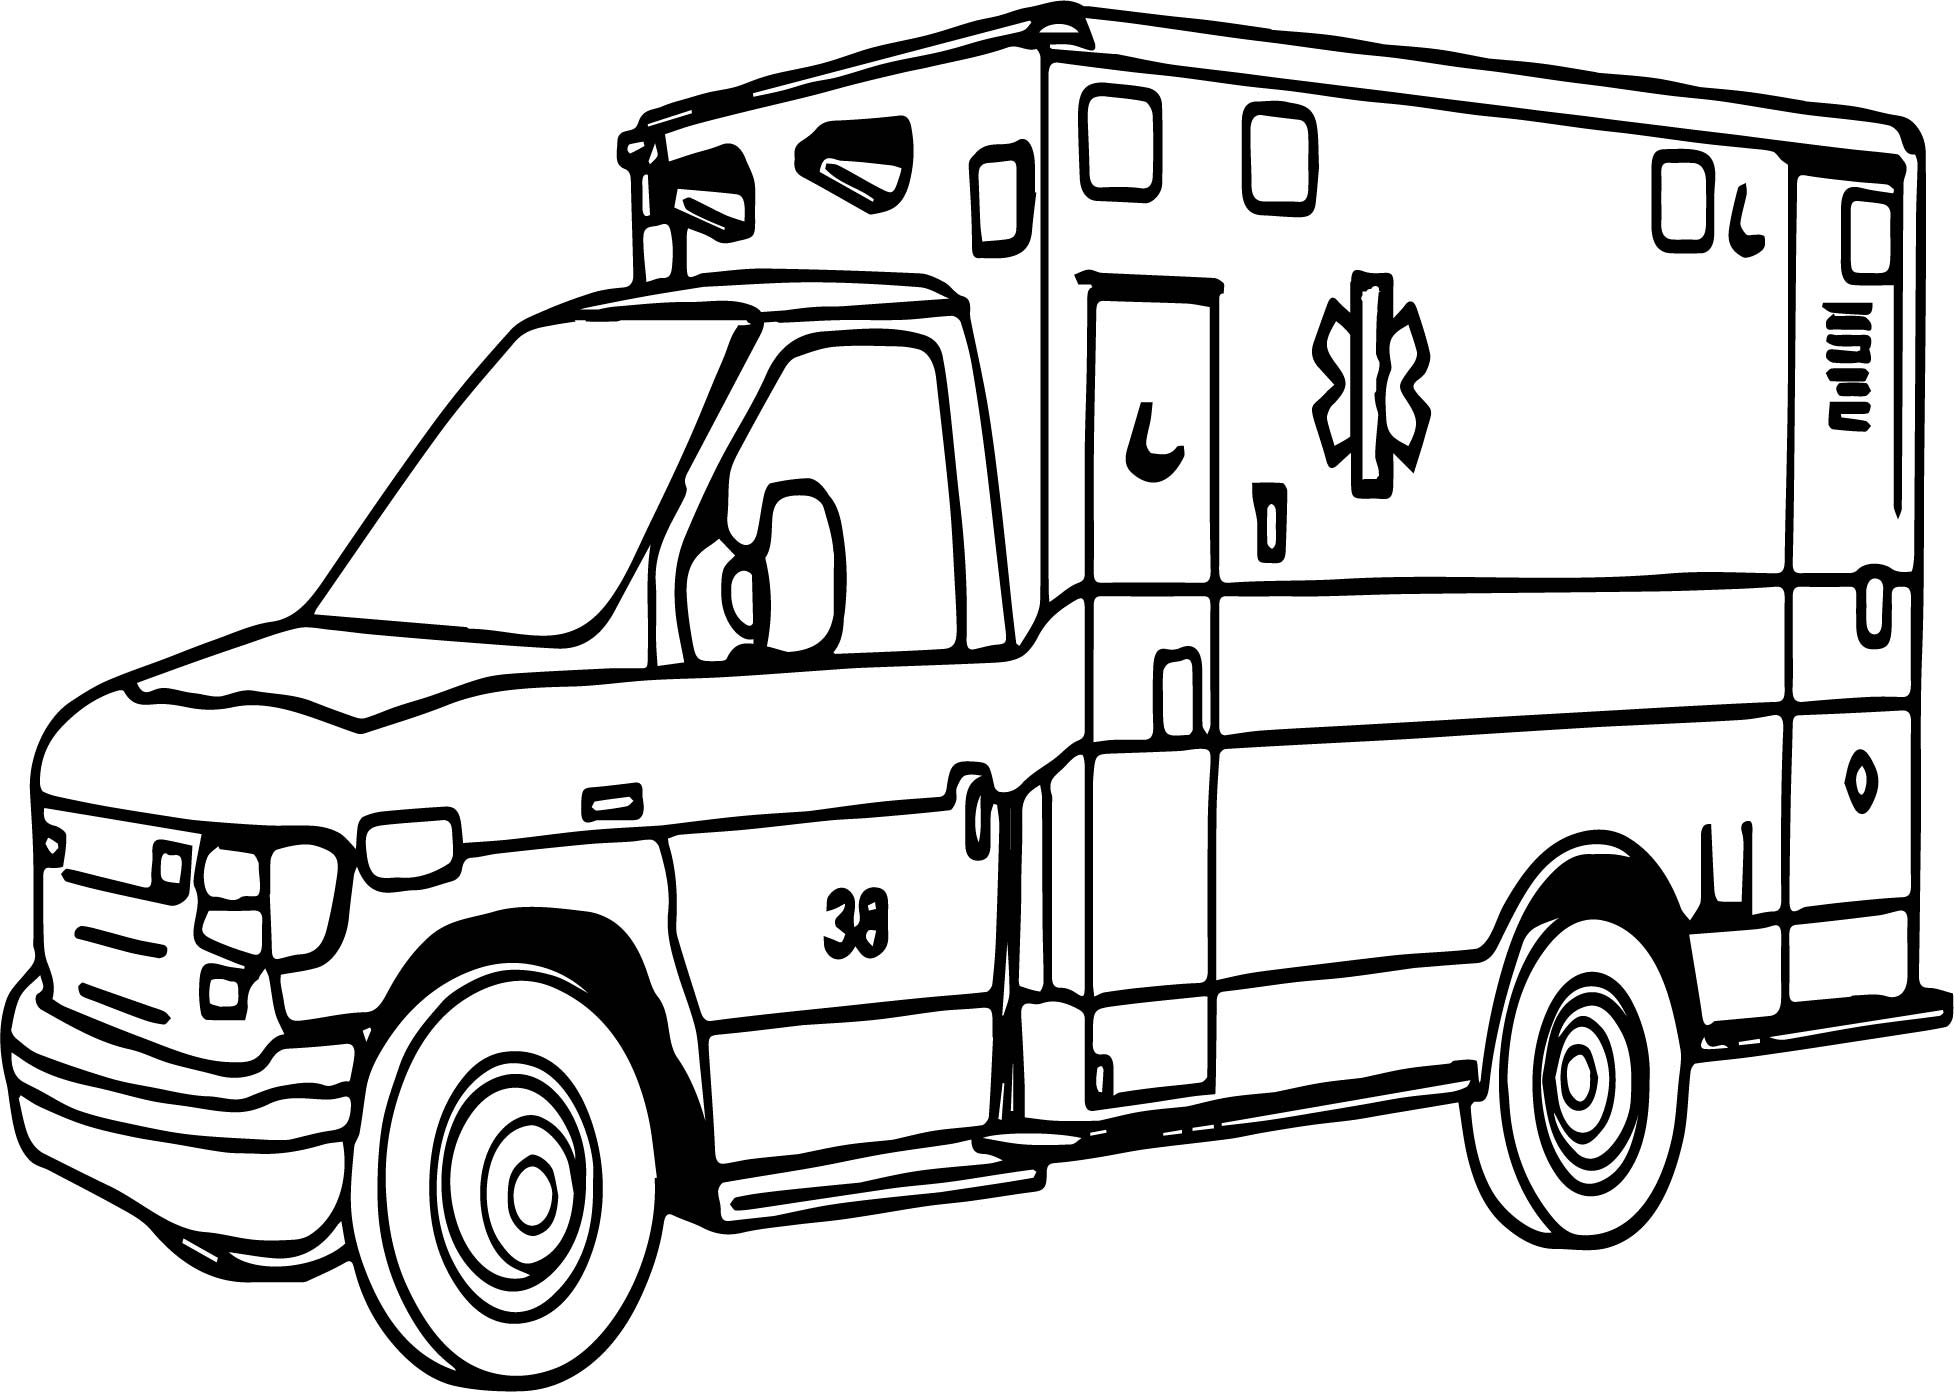 Ambulance Coloring Pages At Getdrawings